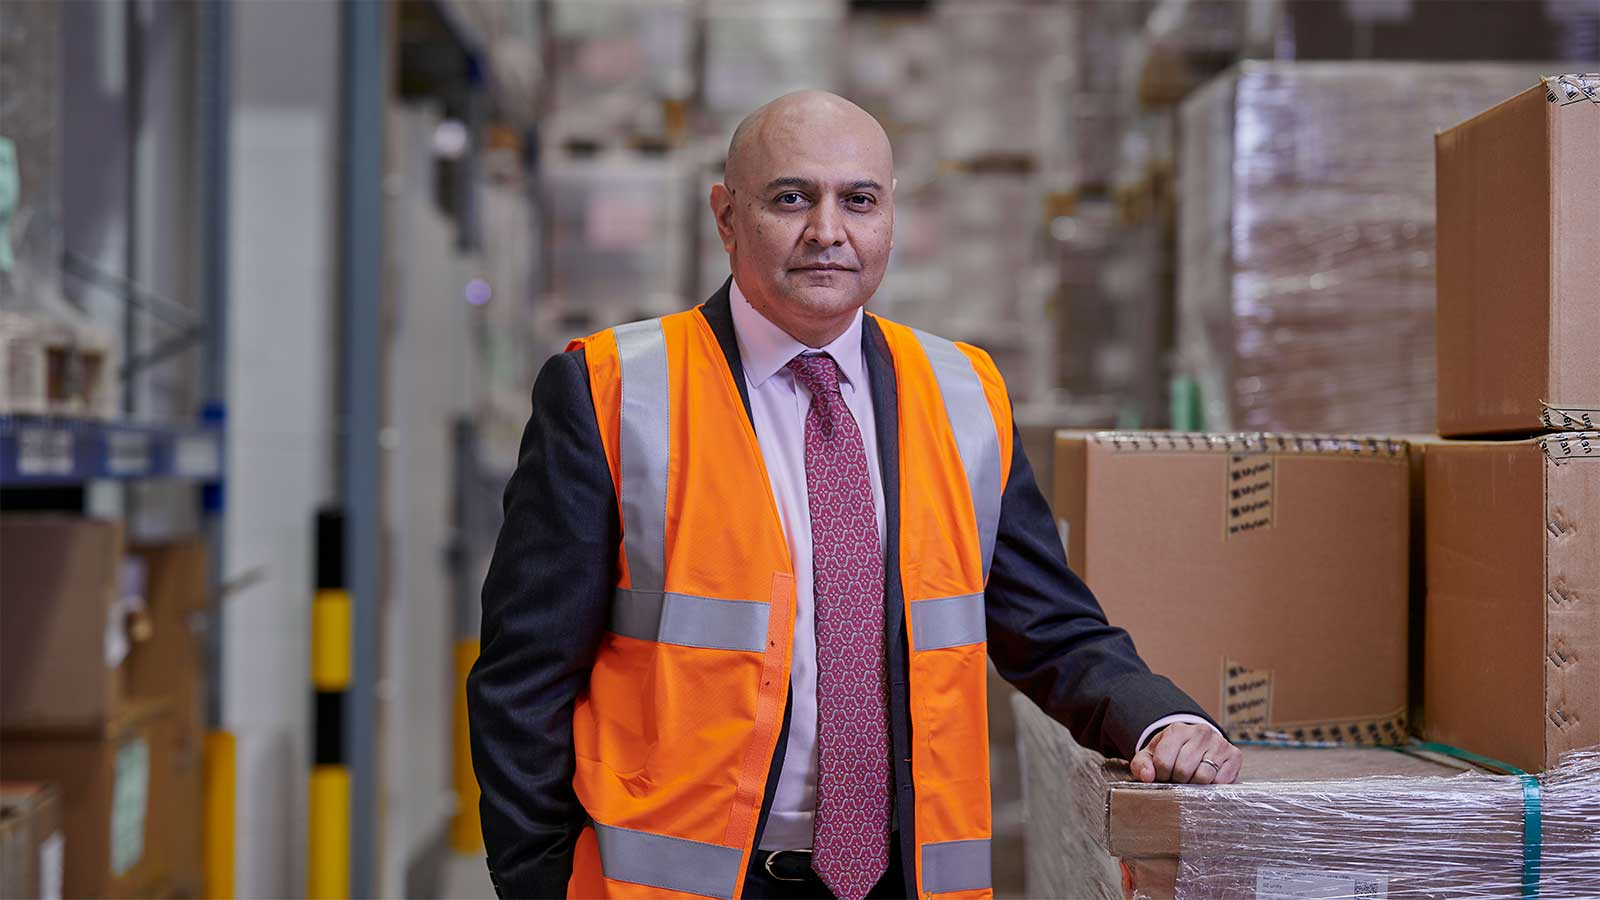 Dr Nik Kotecha OBE, Founder and Chairman of Morningside Pharmaceuticals